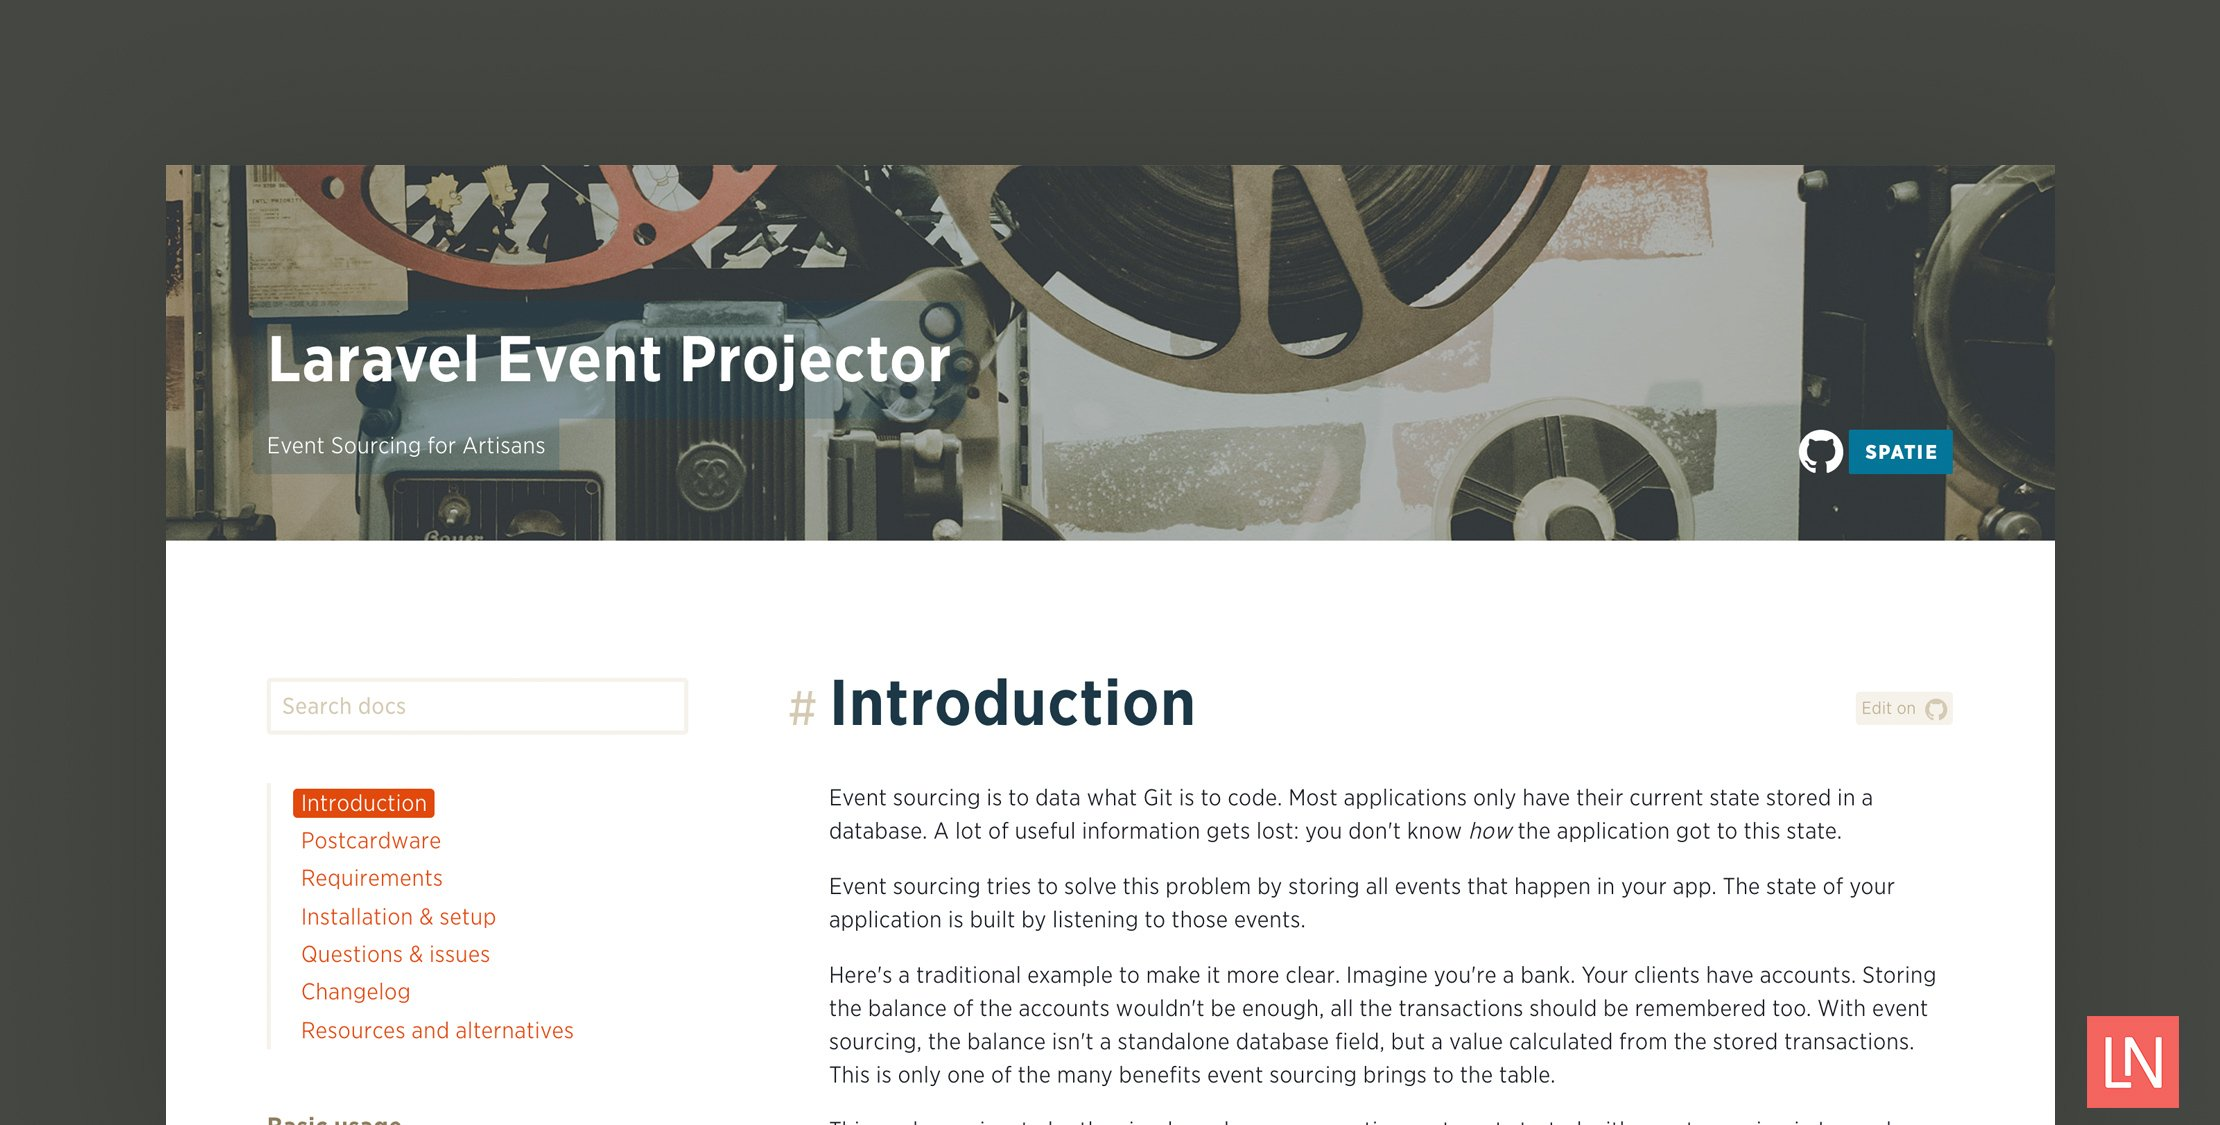 laravel-event-projector.jpg